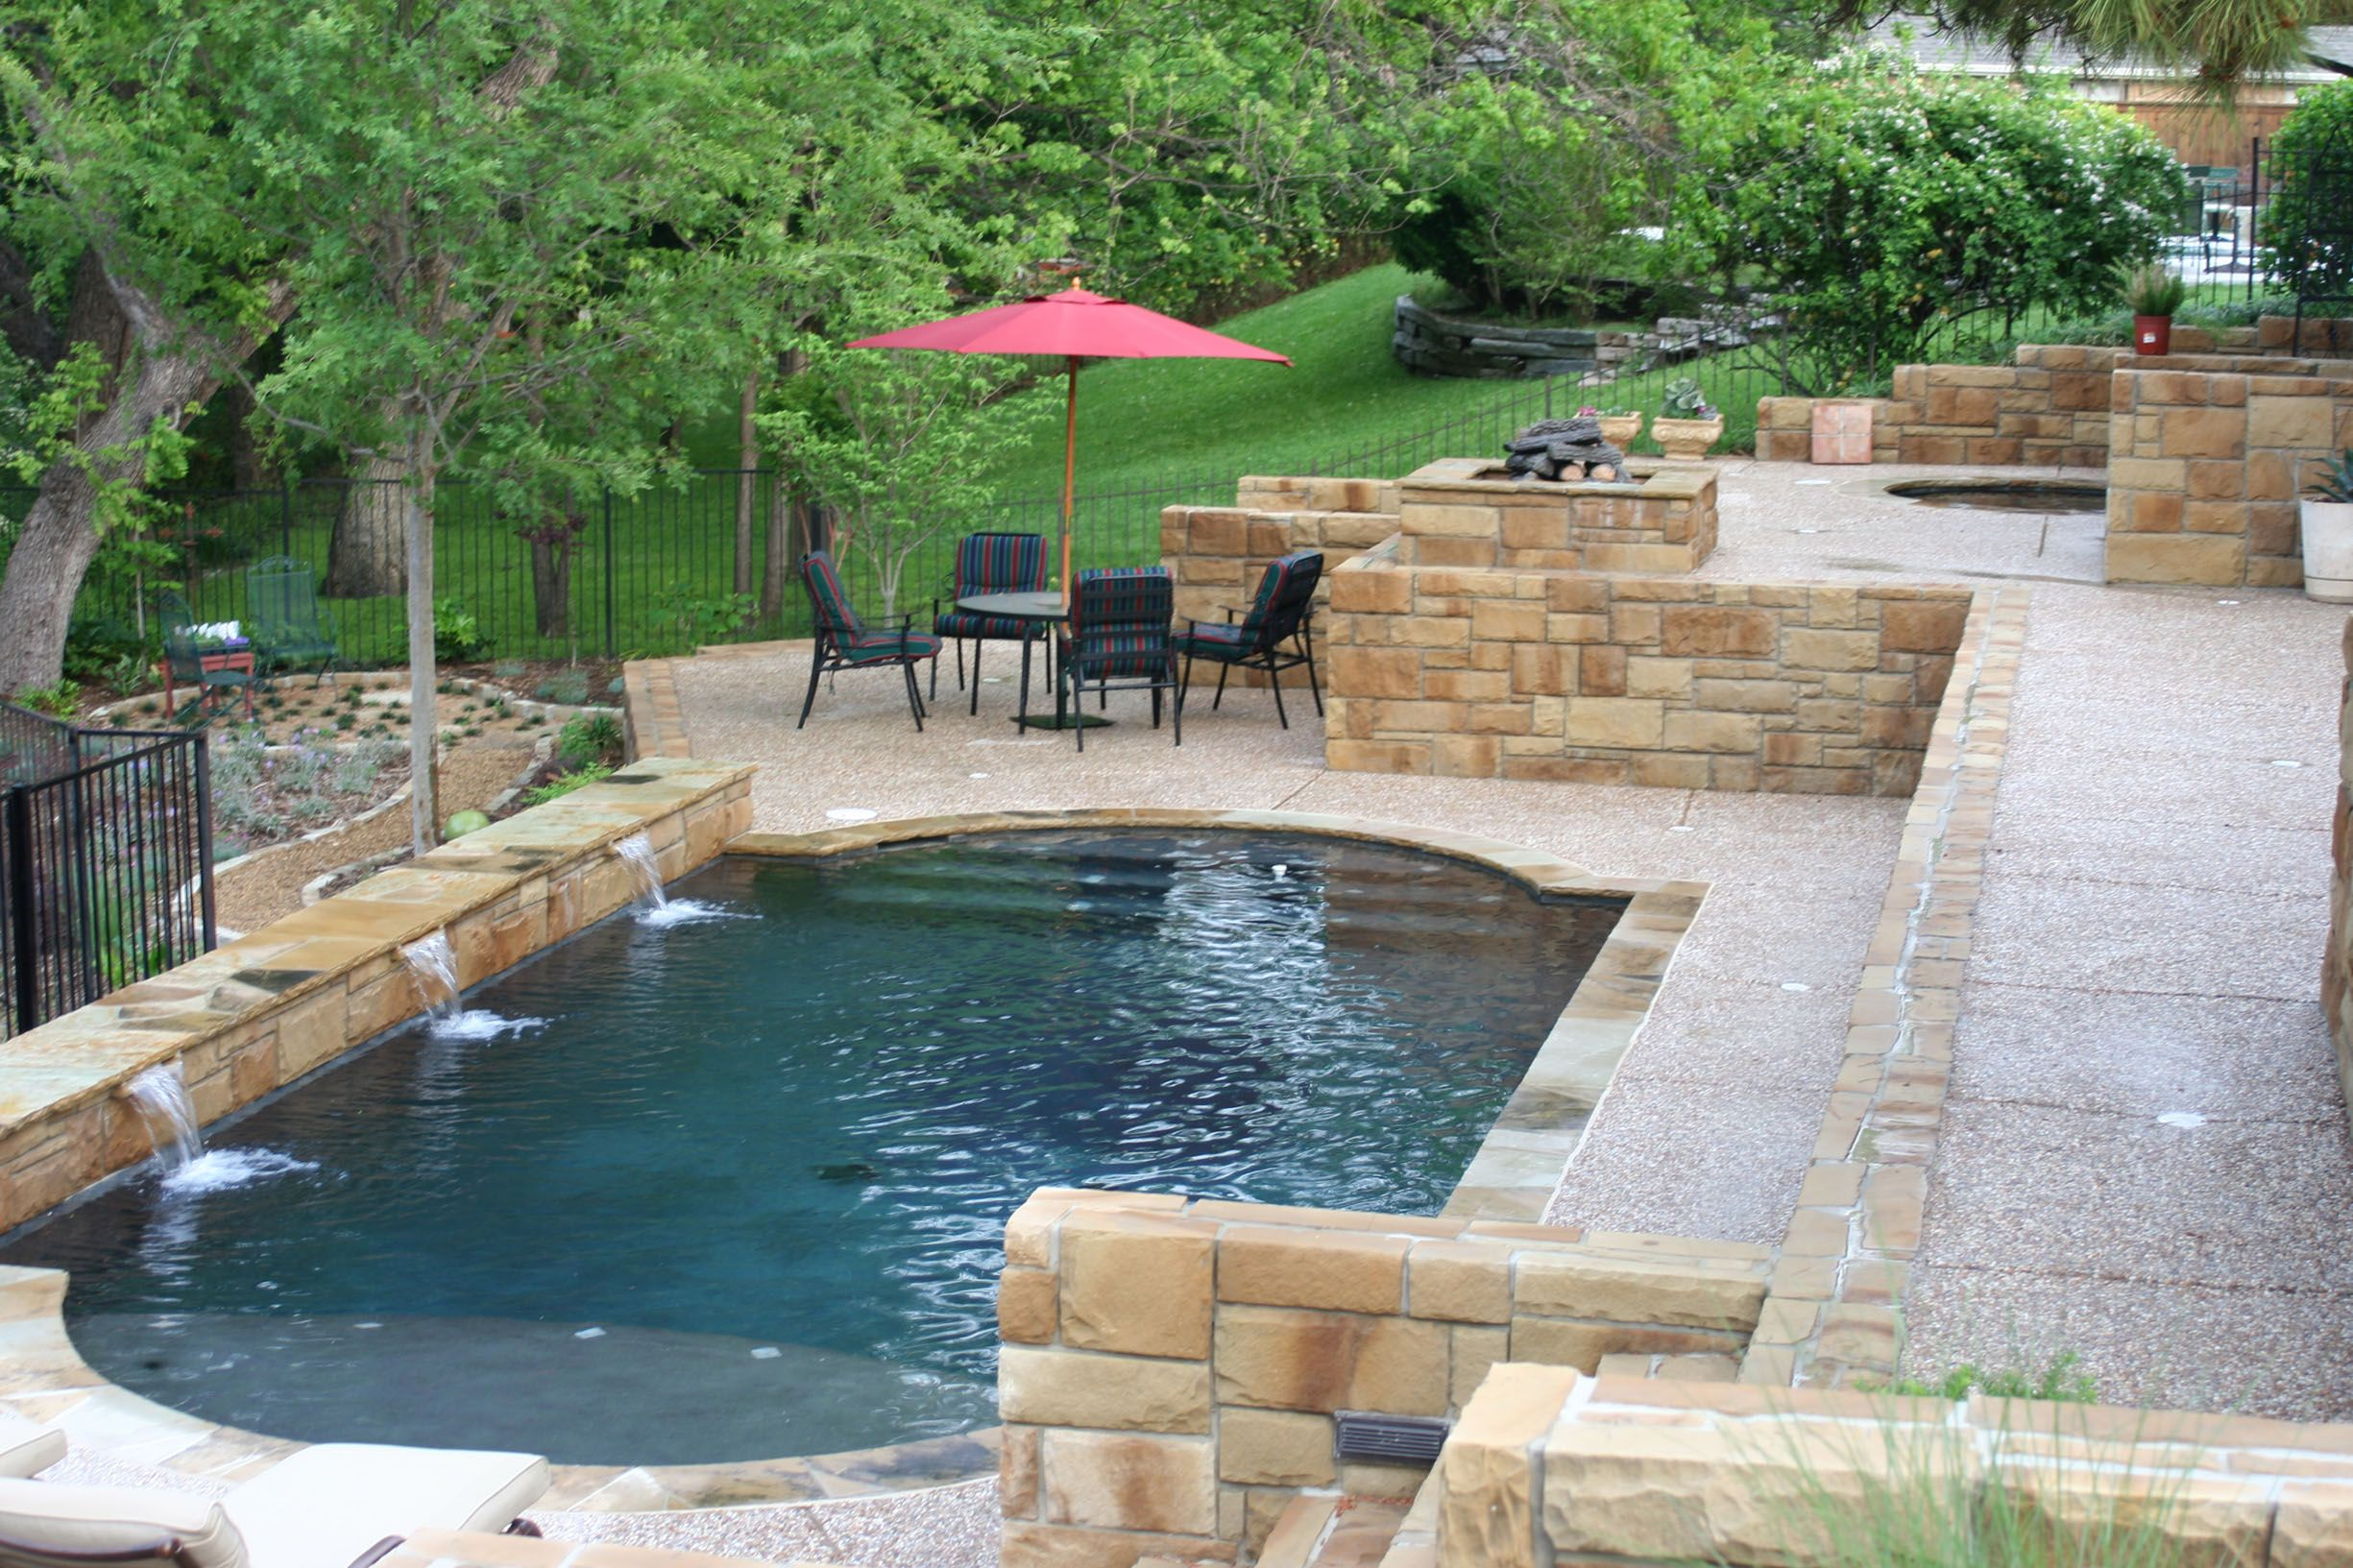 pool ideas for small back yard pool designs for stunning small backyard - Pool Design Ideas